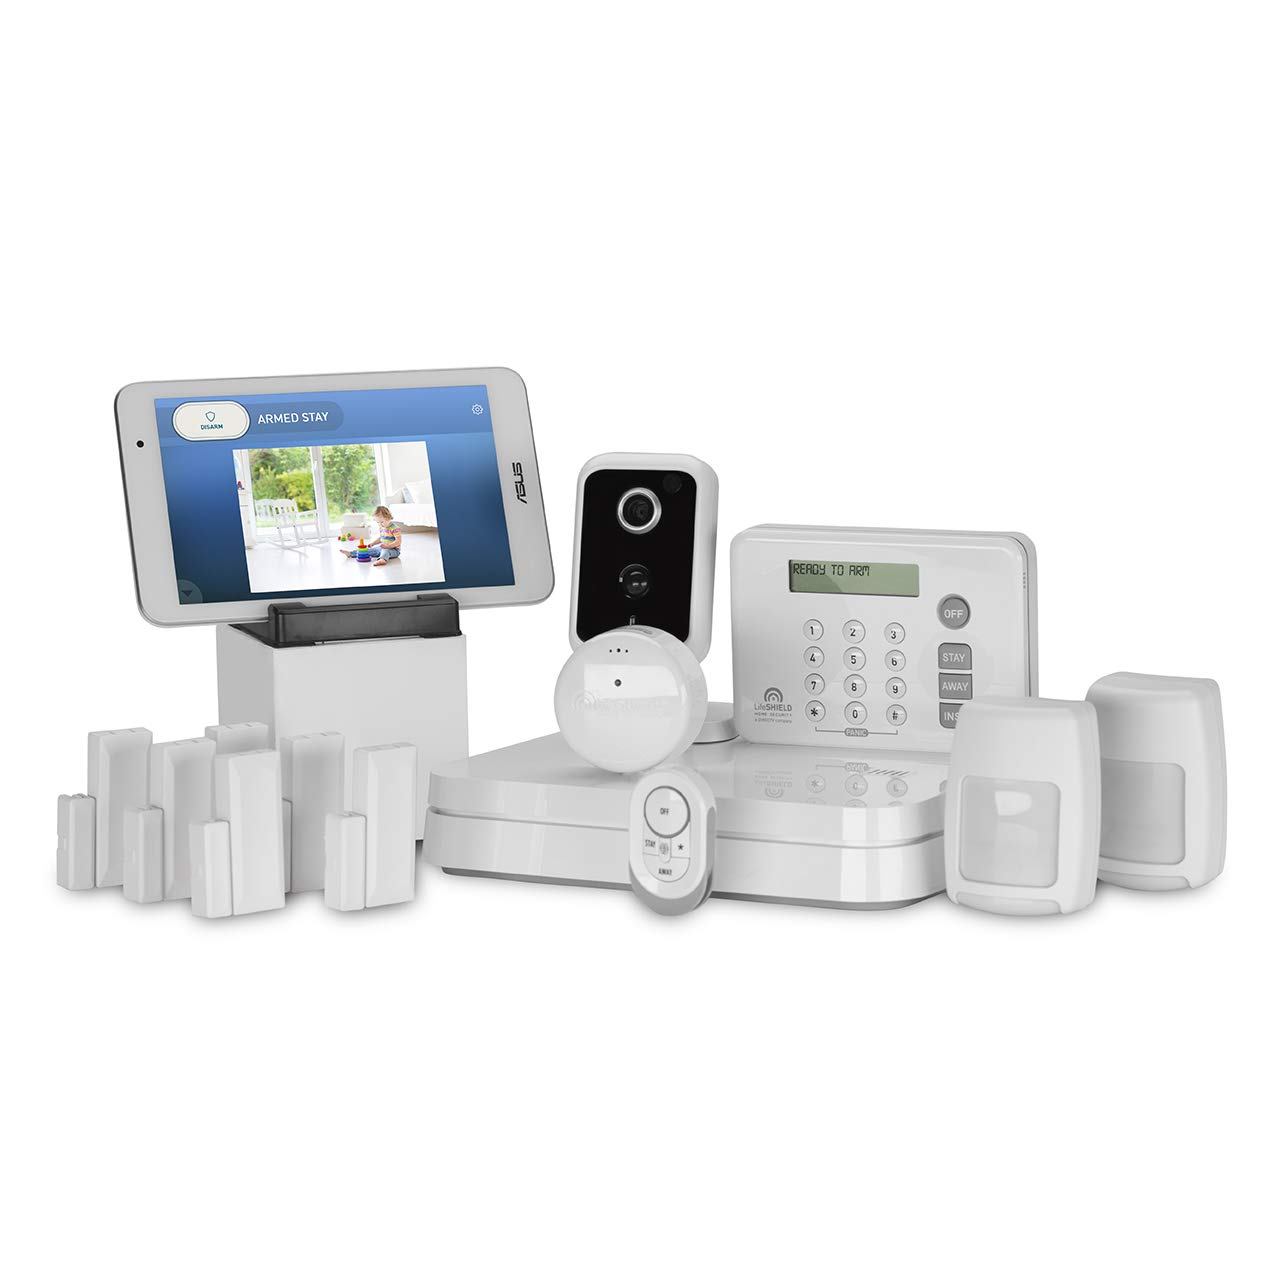 LifeShield, an ADT Company - 15-Piece Easy, DIY Smart Home Security System - Optional 24/7 Monitoring - Smart Camera - No Contract - Wi-Fi Enabled - Alexa Compatible